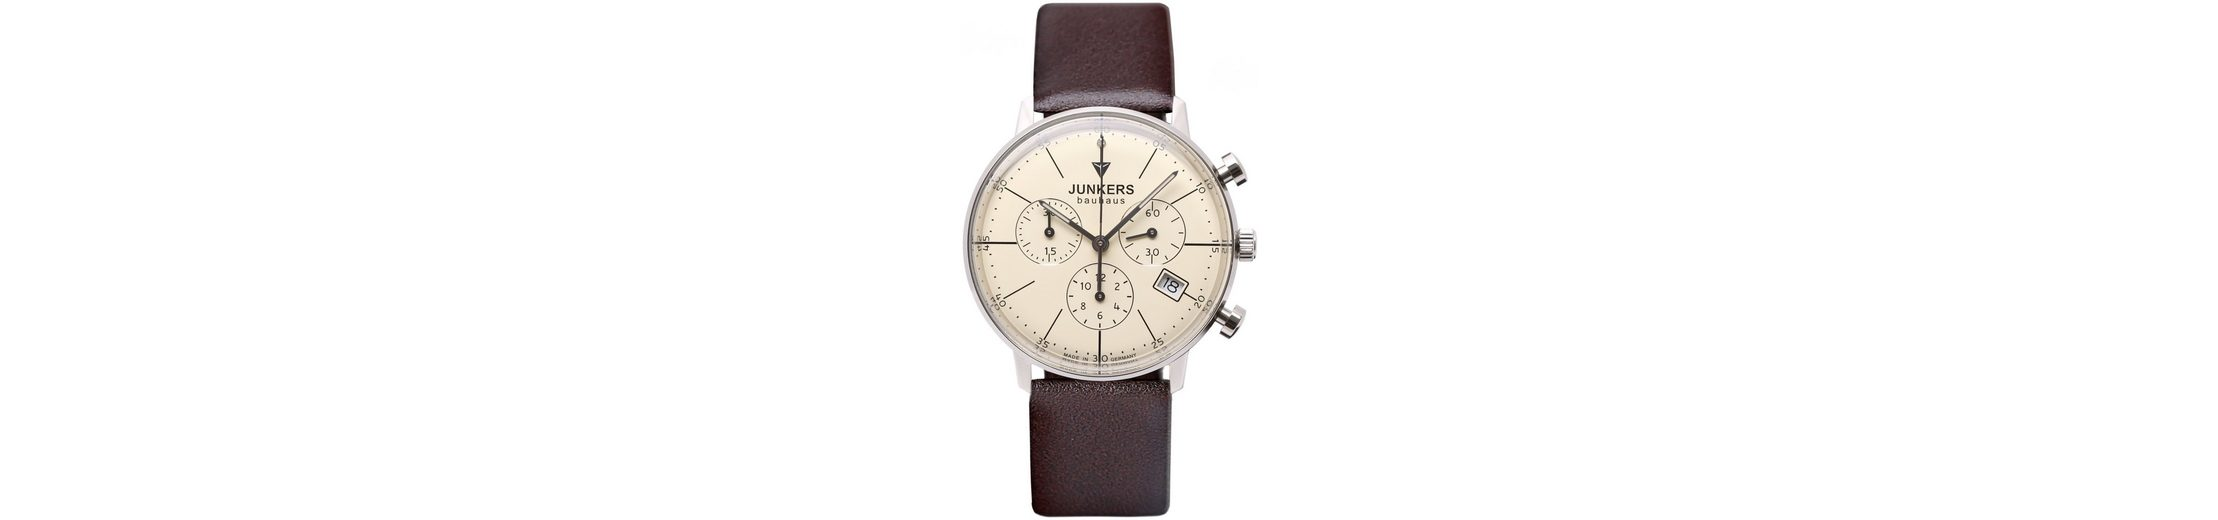 Junkers-Uhren Chronograph »BAUHAUS, 6089-5« Made in Germany